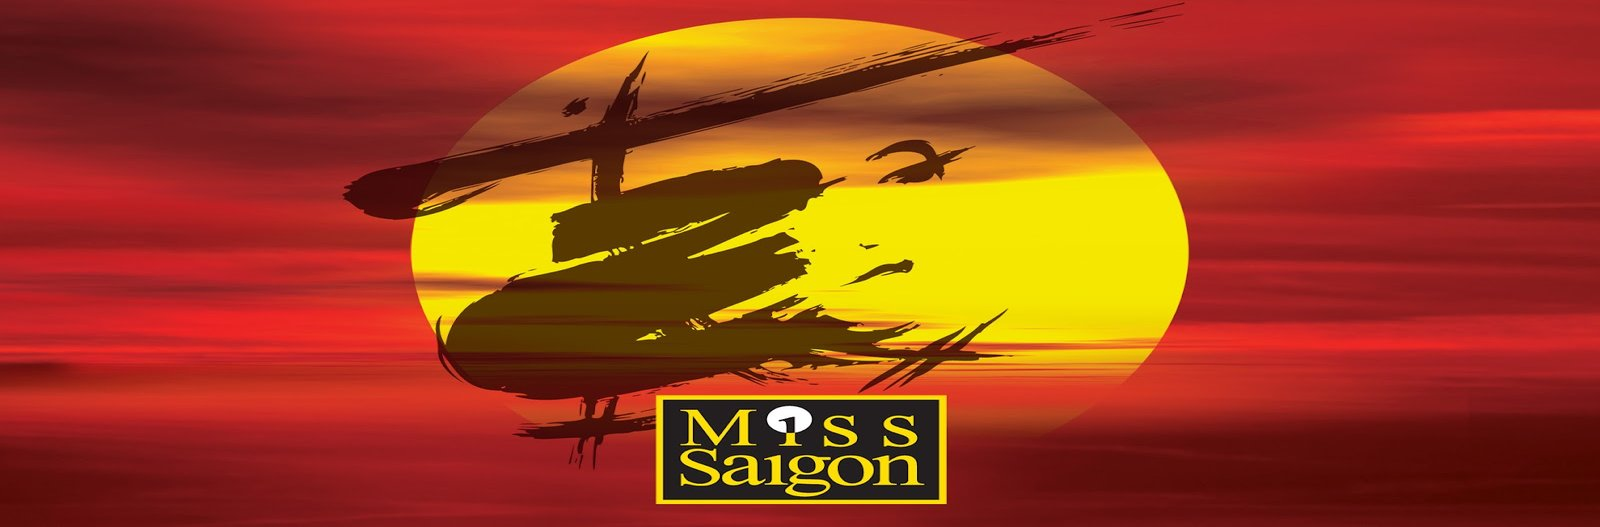 rsz_miss_saigon